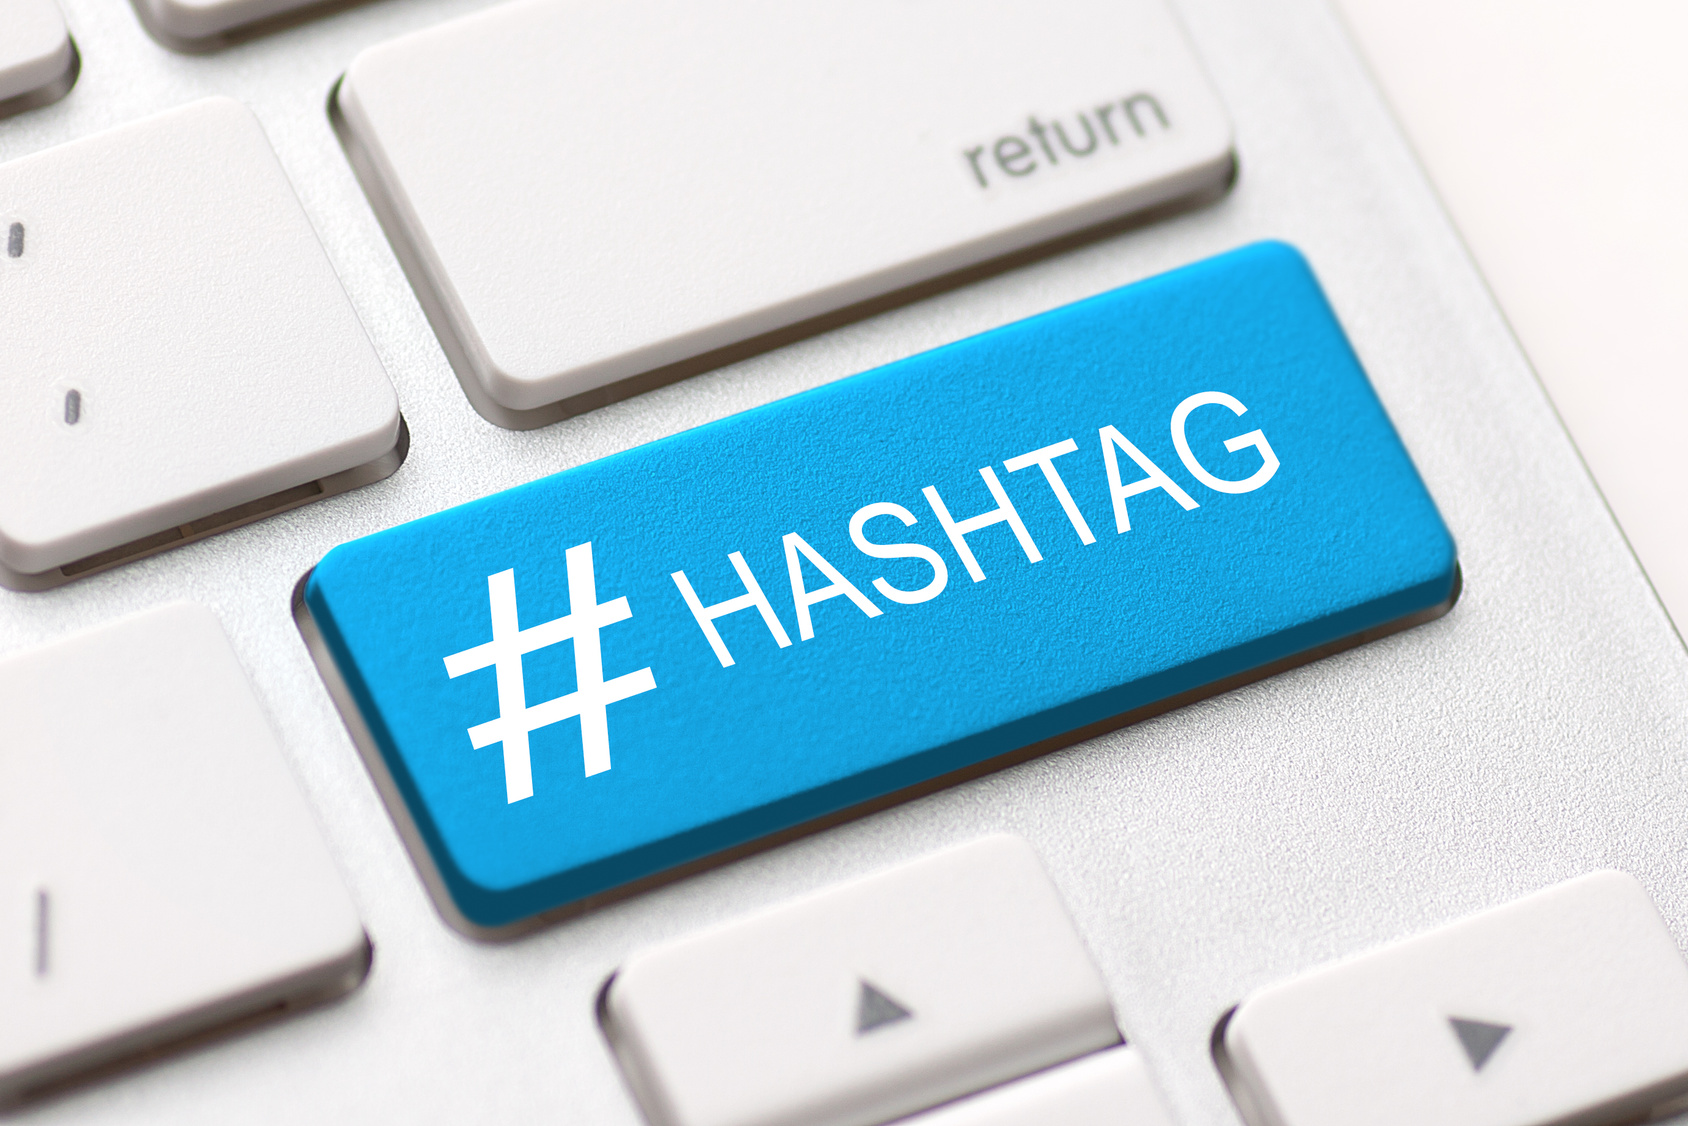 hashtag blogging blog content media social laptop keyboard key keypad business category concept - stock image